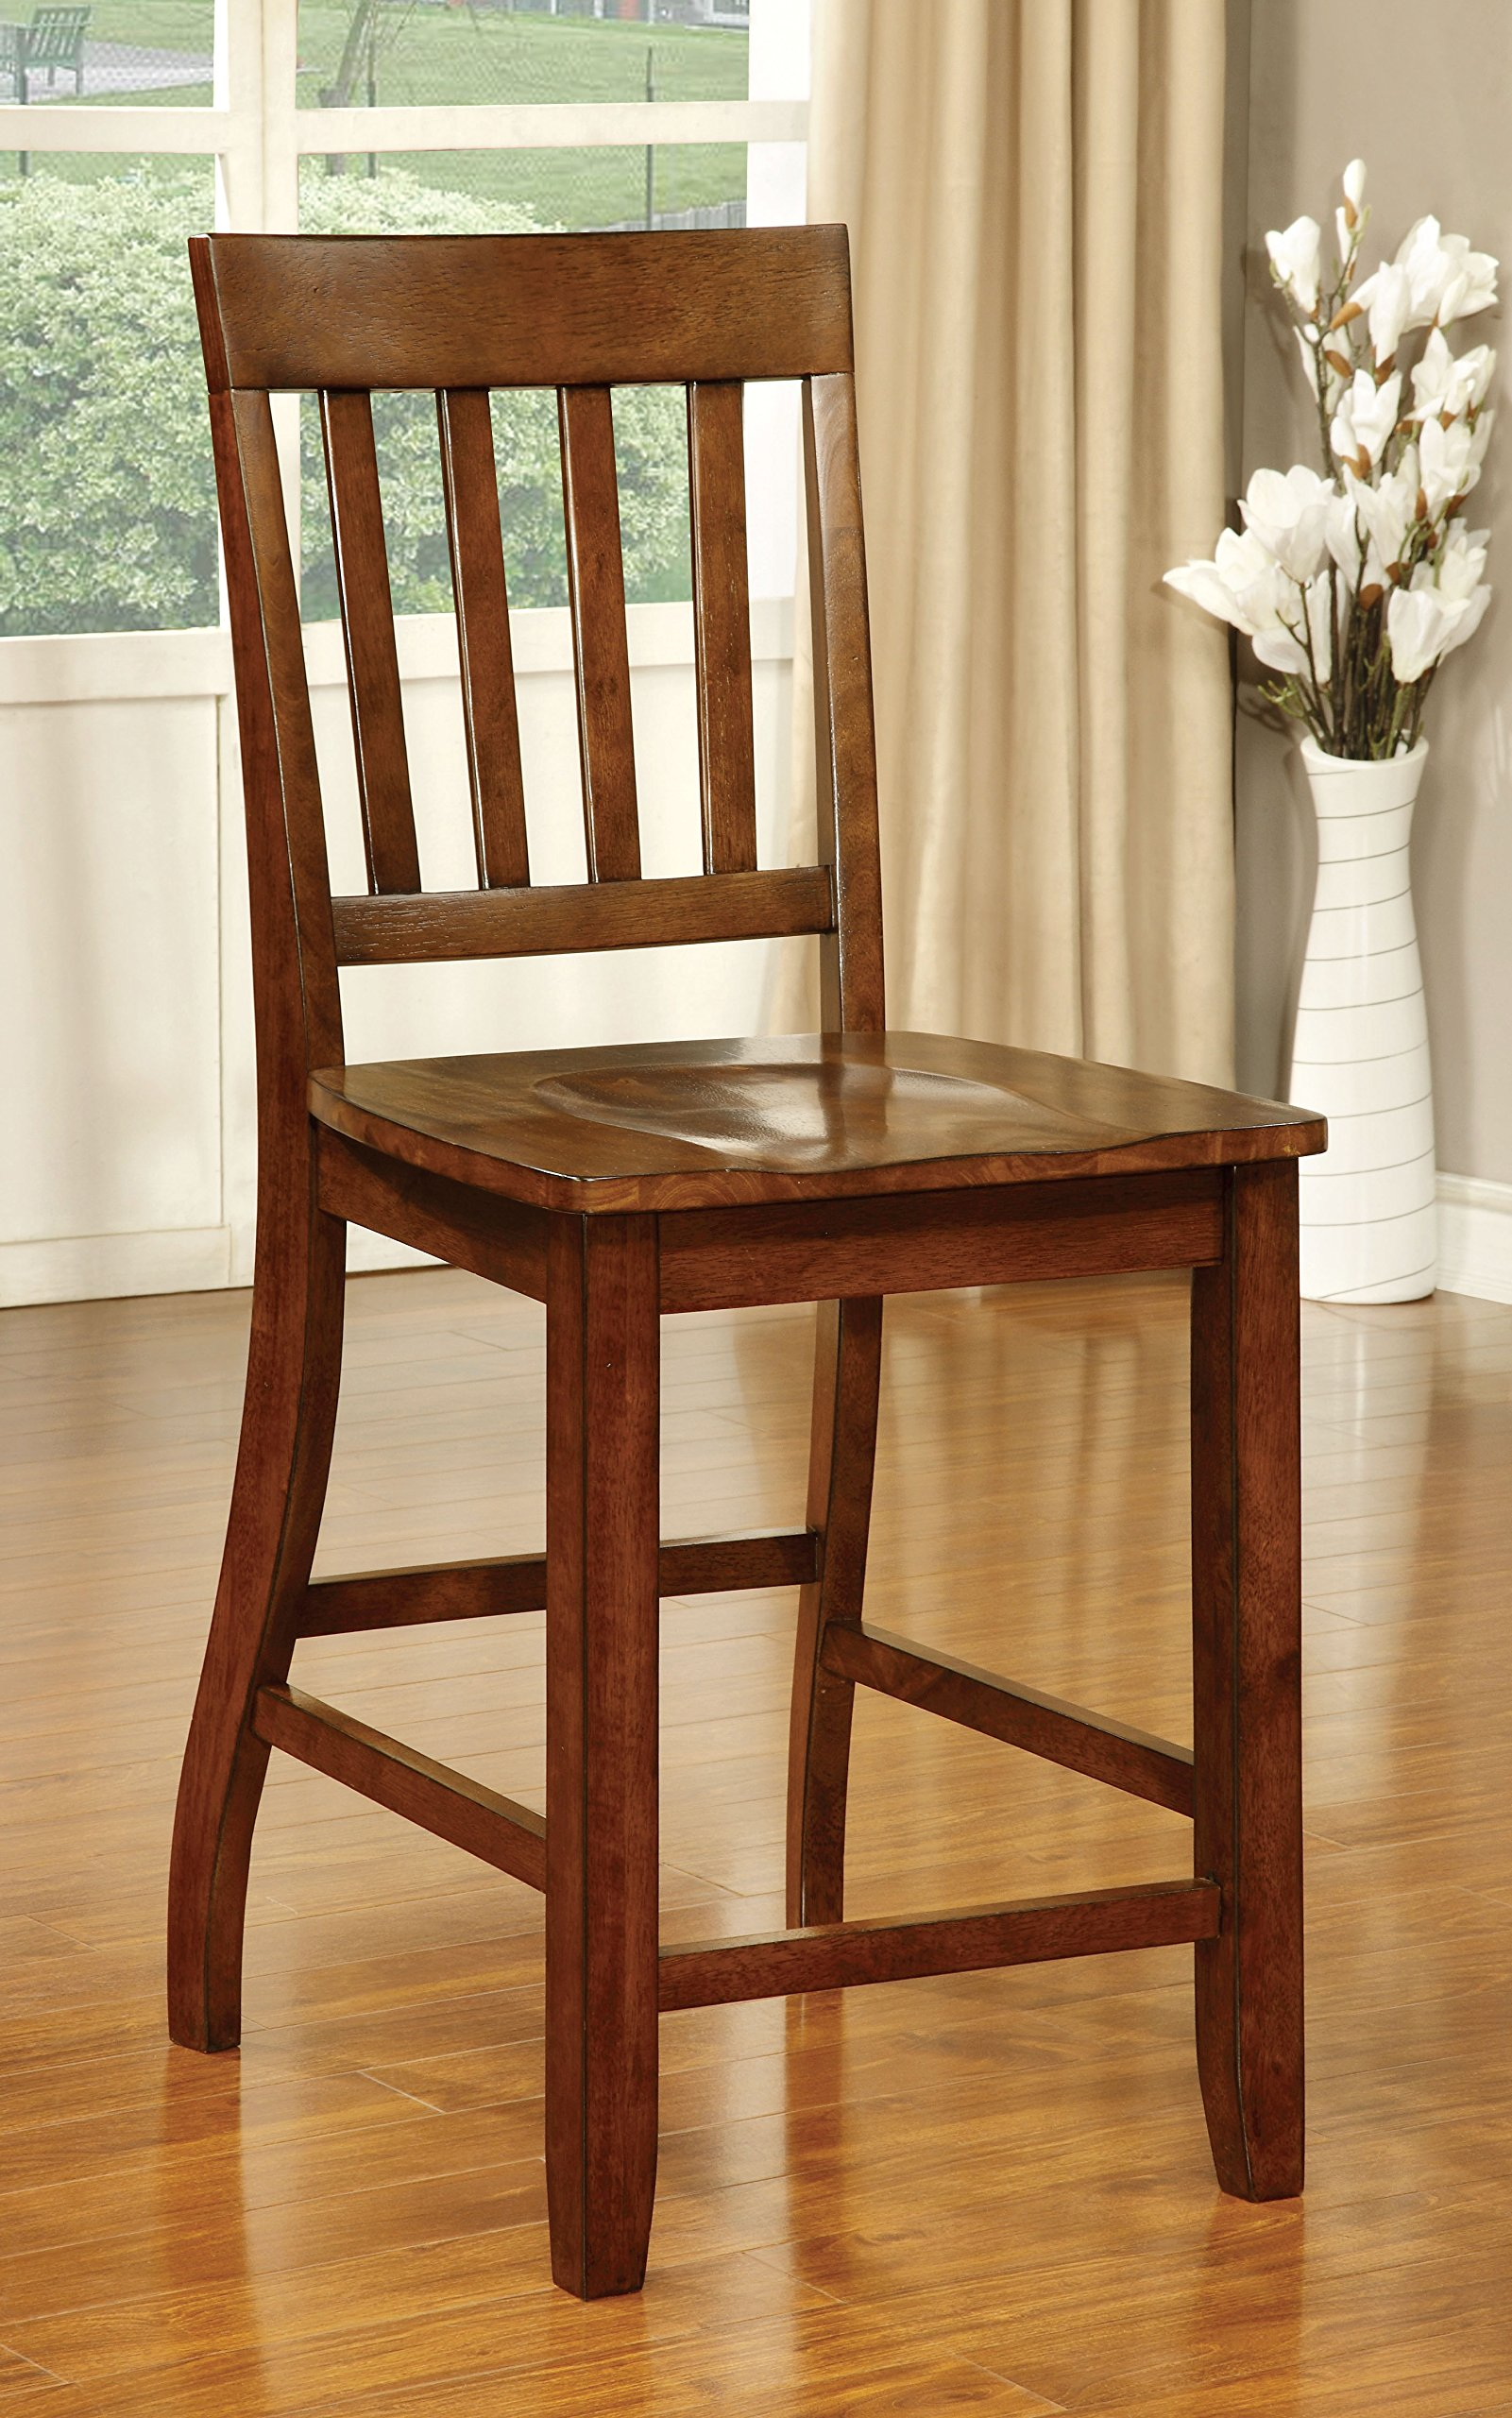 Furniture of America Castile Transitional Pub Chair, Dark Oak, Set of 2